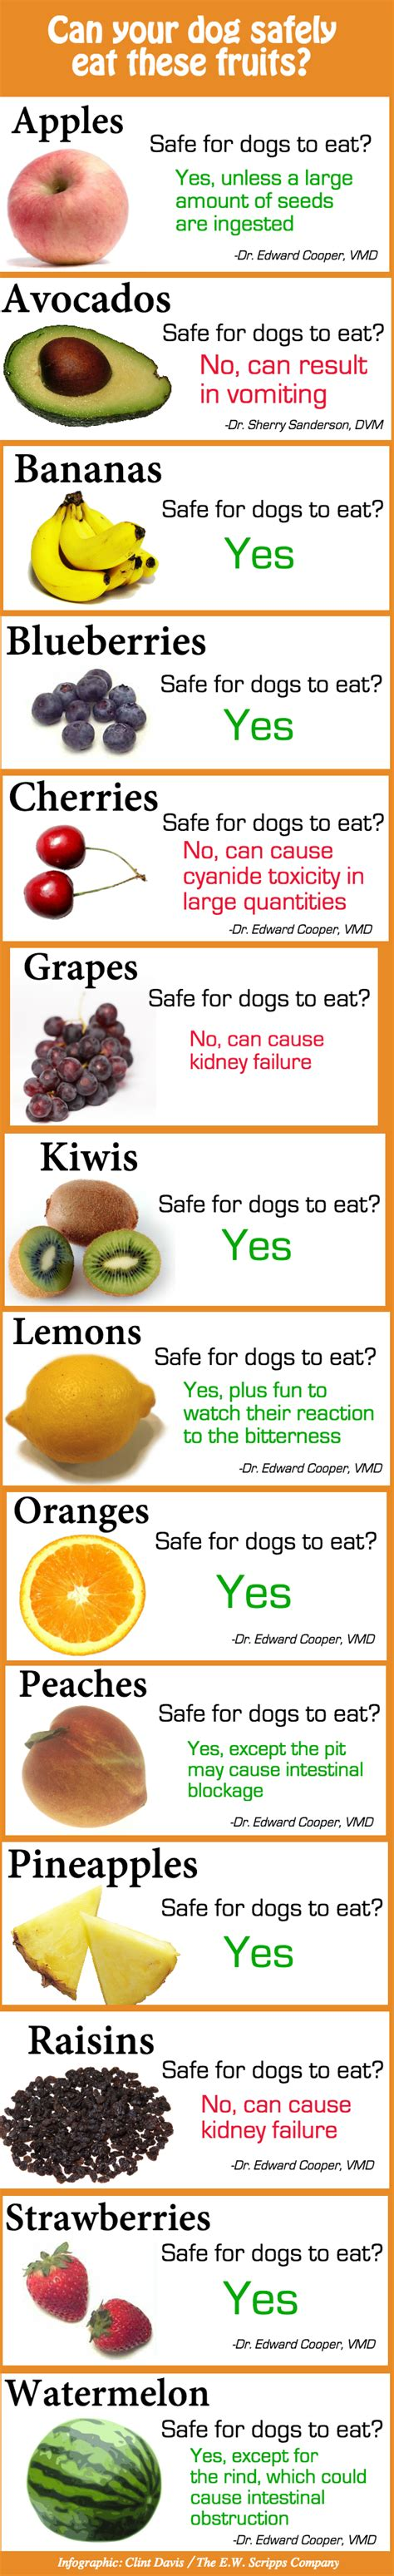 fruits dogs can eat can your safely eat these fruits pictures photos and images for